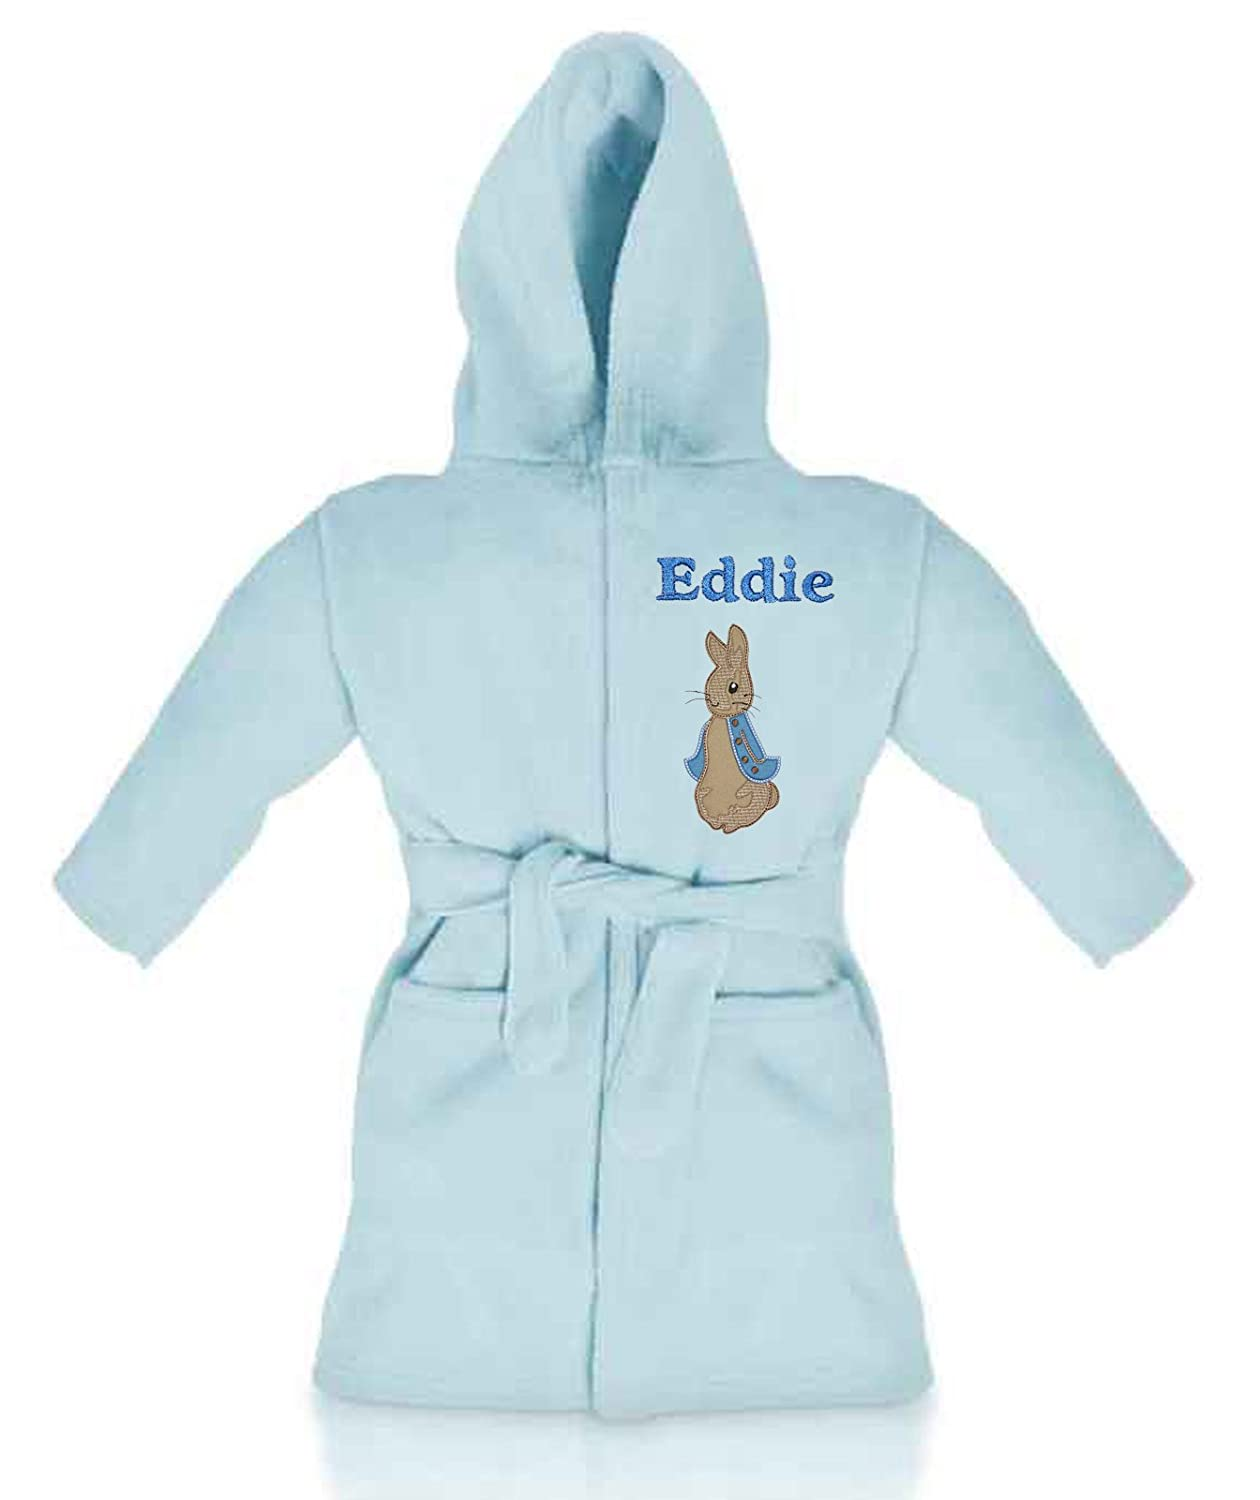 Peter Rabbit Personalised & Applique Super Soft Fleece Dressing Gown/Bathrobe (Baby Blue) Peter Rabbit Blue